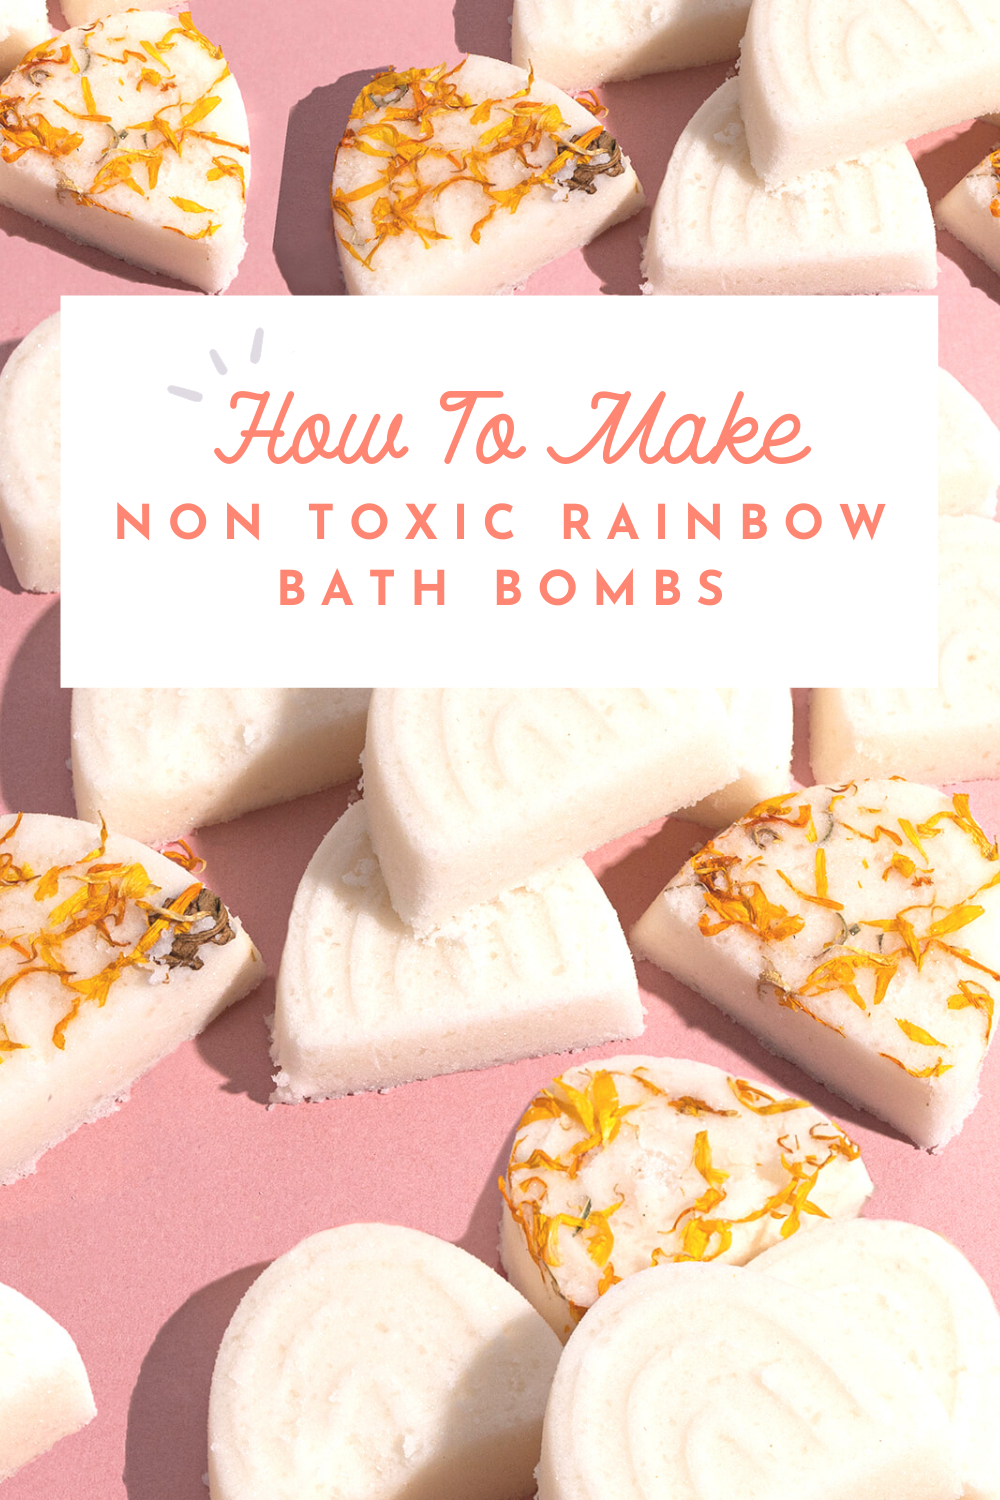 How to make non toxic rainbow bath bombs with essential oils whimsy wellness DIY kit